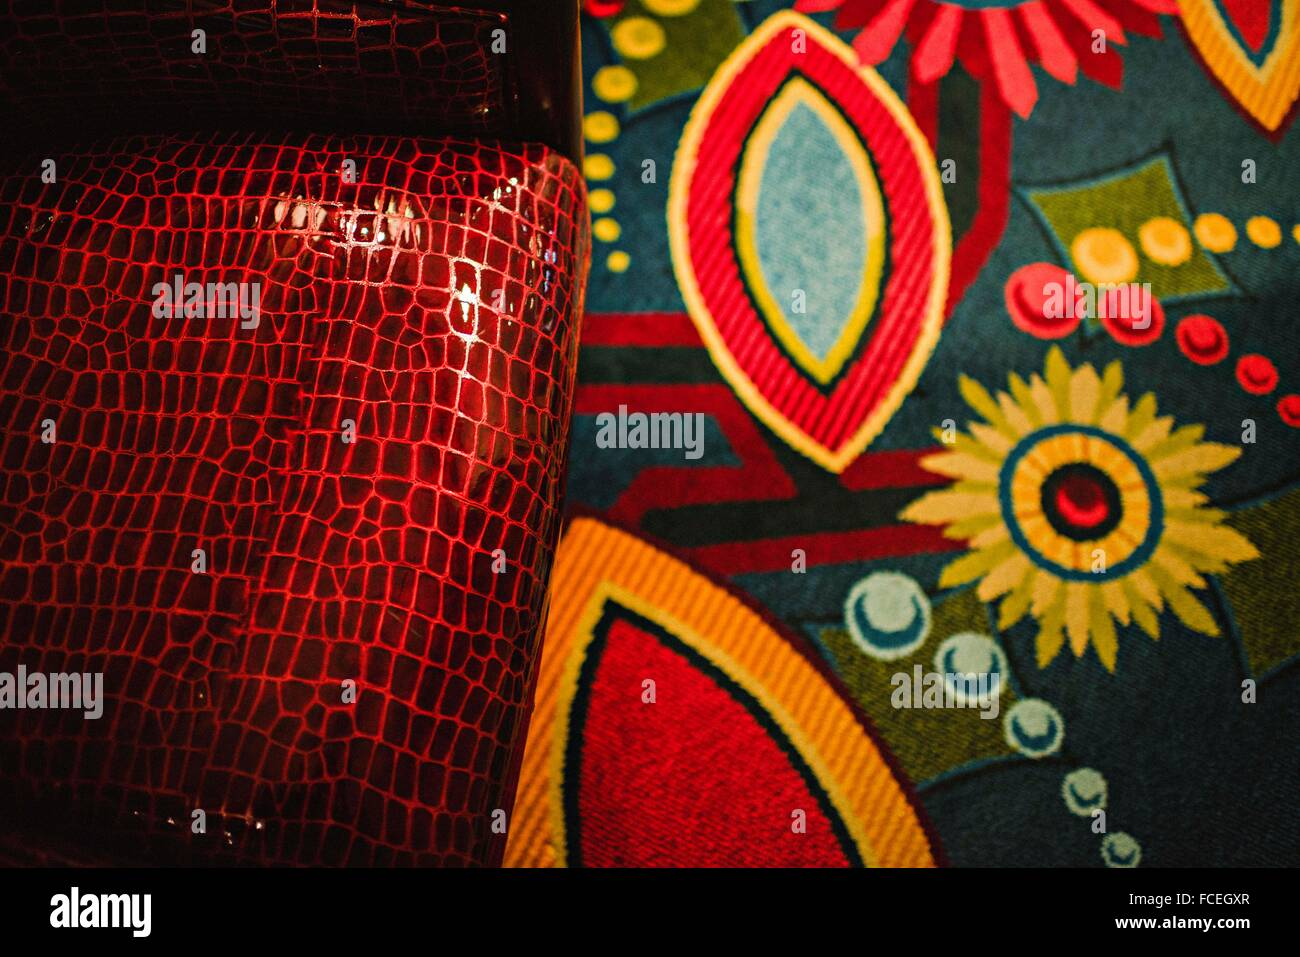 Close-Up Of Red Purse On Bed Sheet - Stock Image